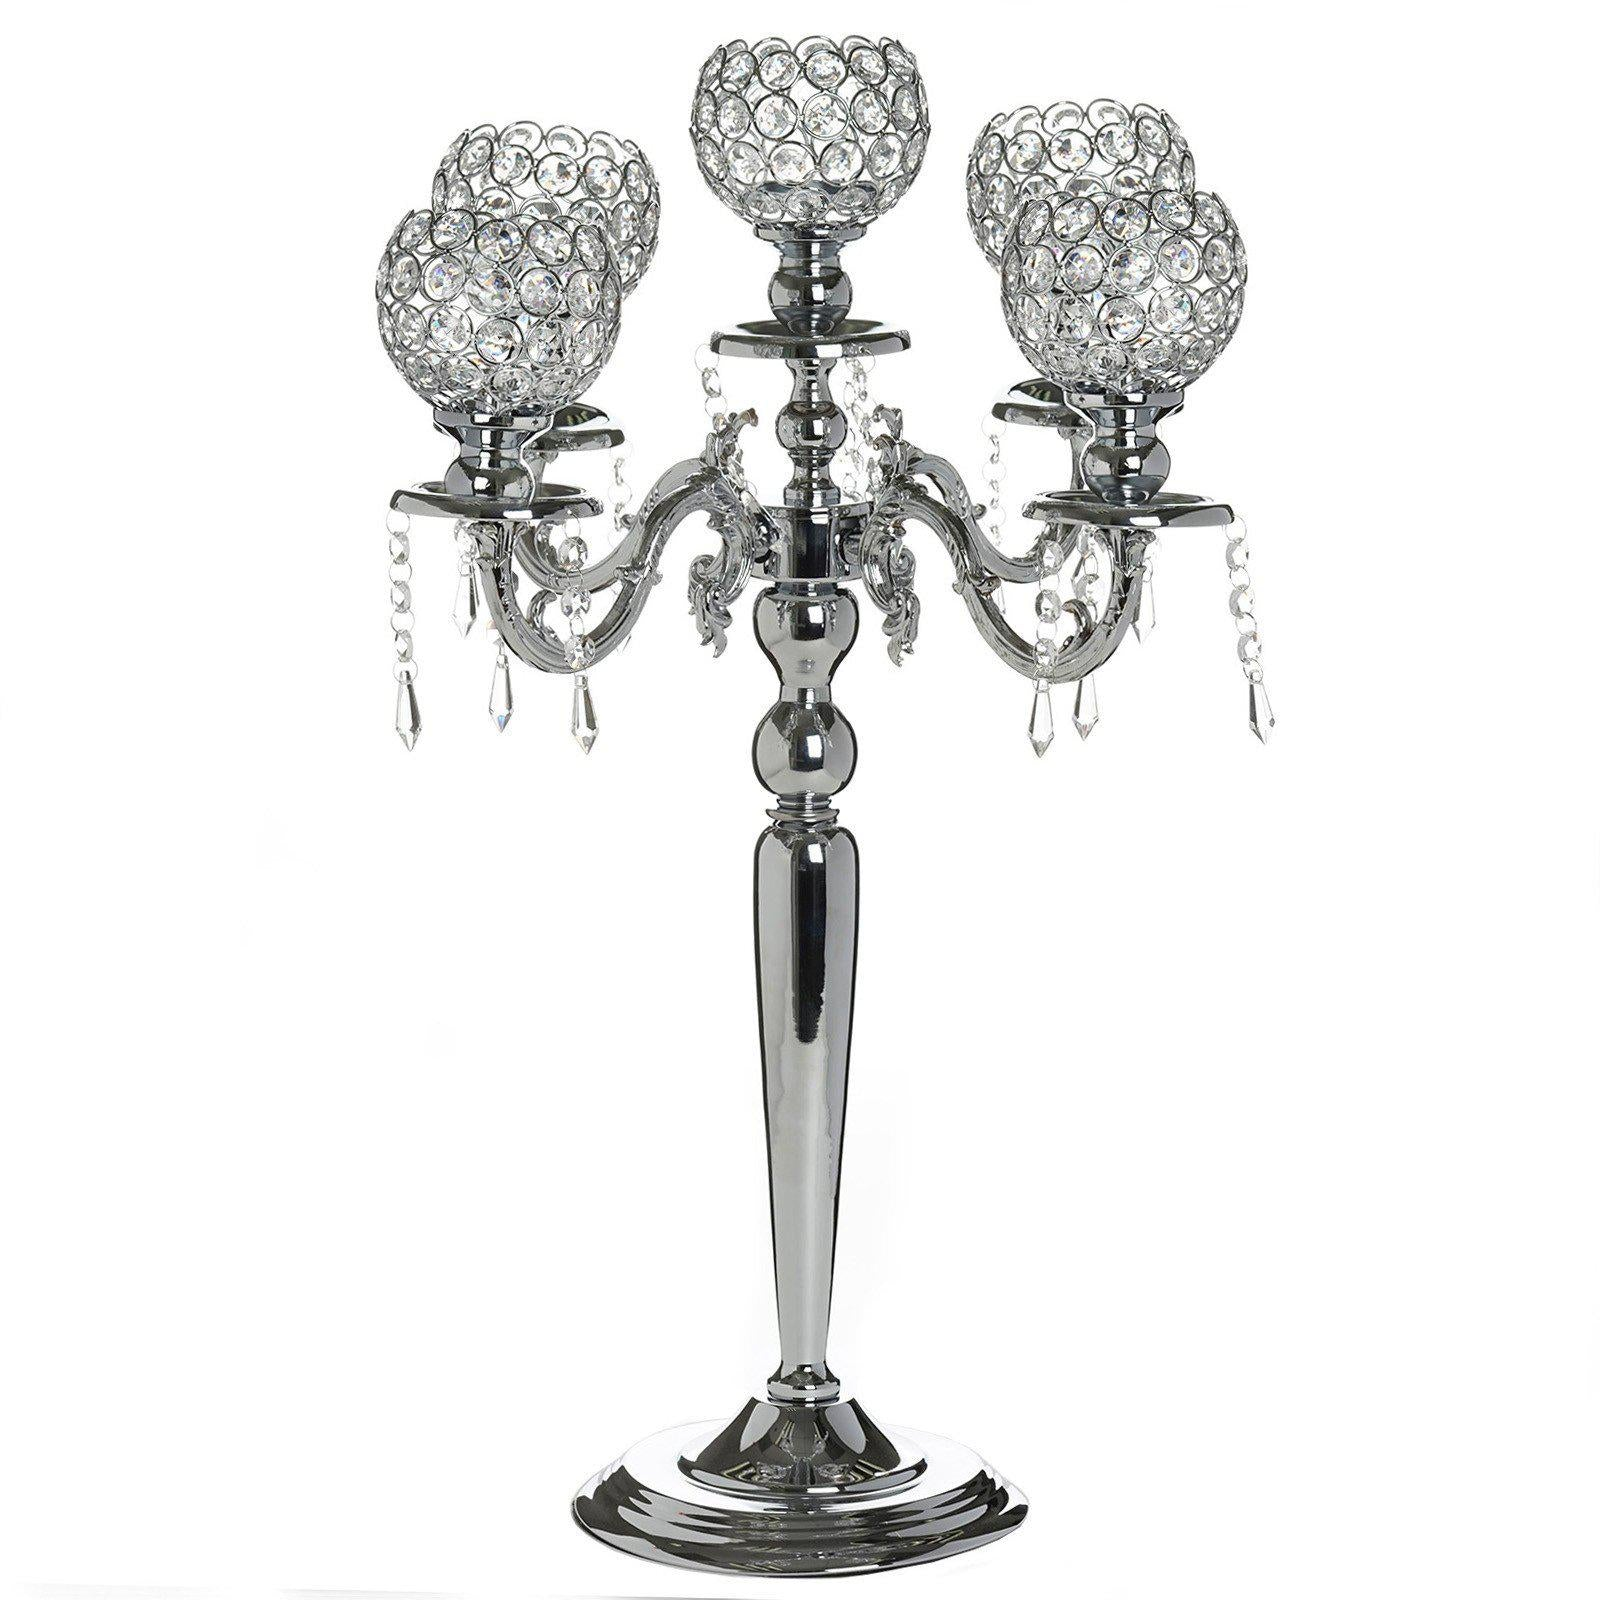 Candelabra chandelier crystal votive candle holder wedding candelabra chandelier crystal votive candle holder wedding centerpiece 25 tall silver aloadofball Image collections